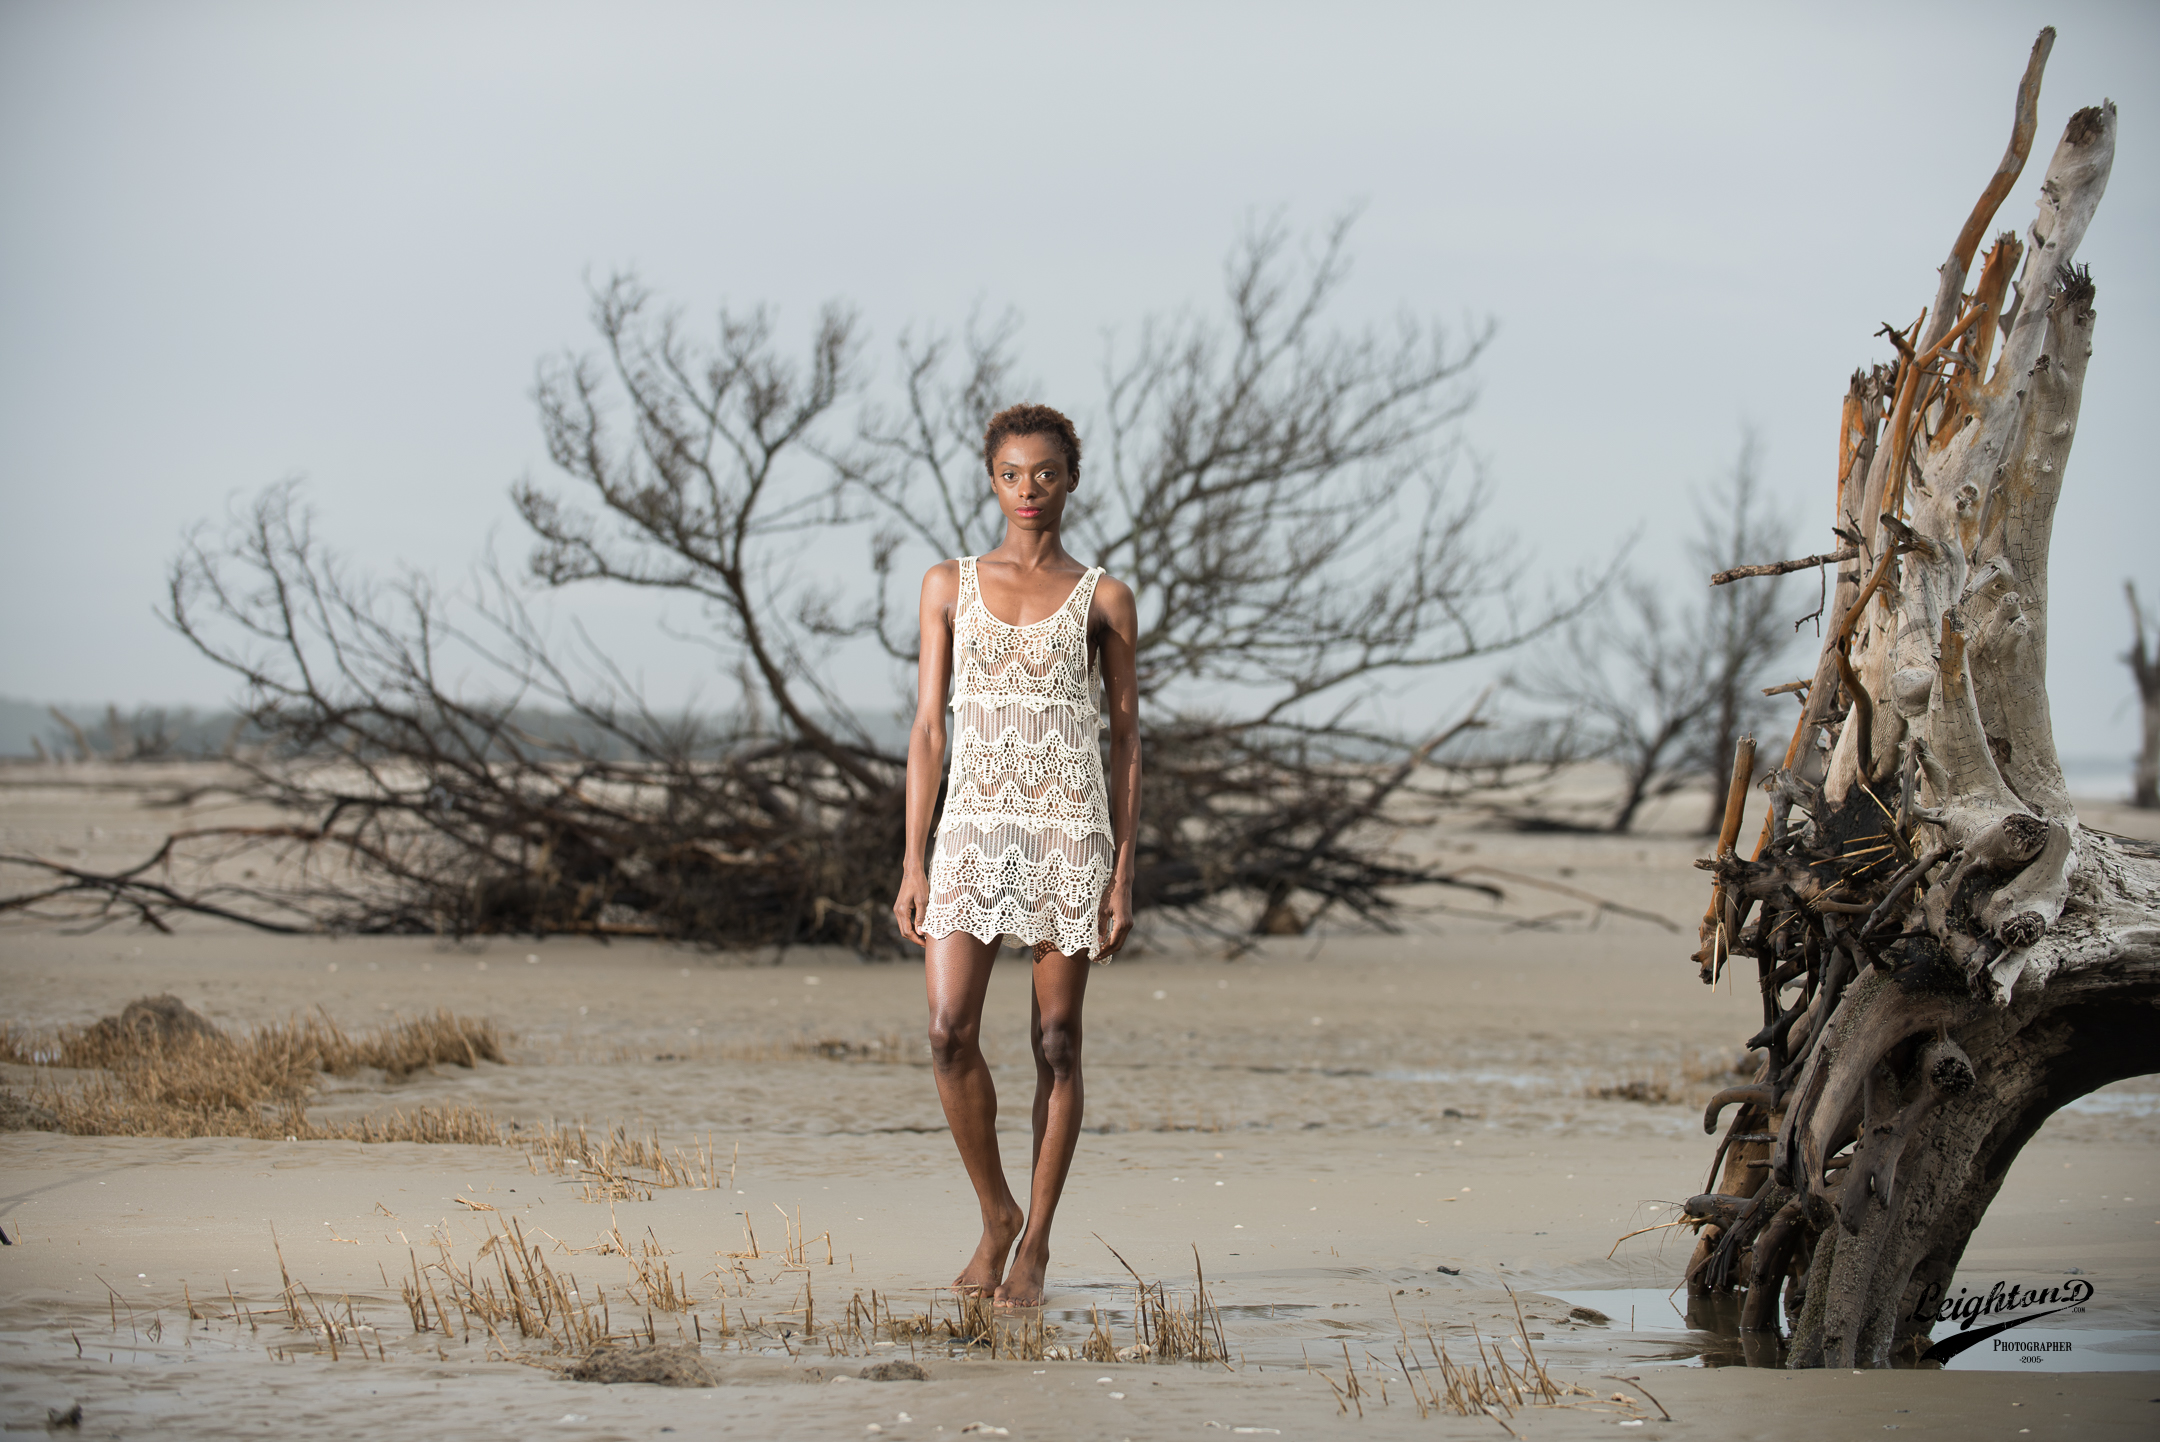 Going during low tide proved to allow for a great photography opportunity.  Shante wearing Lila Nikole